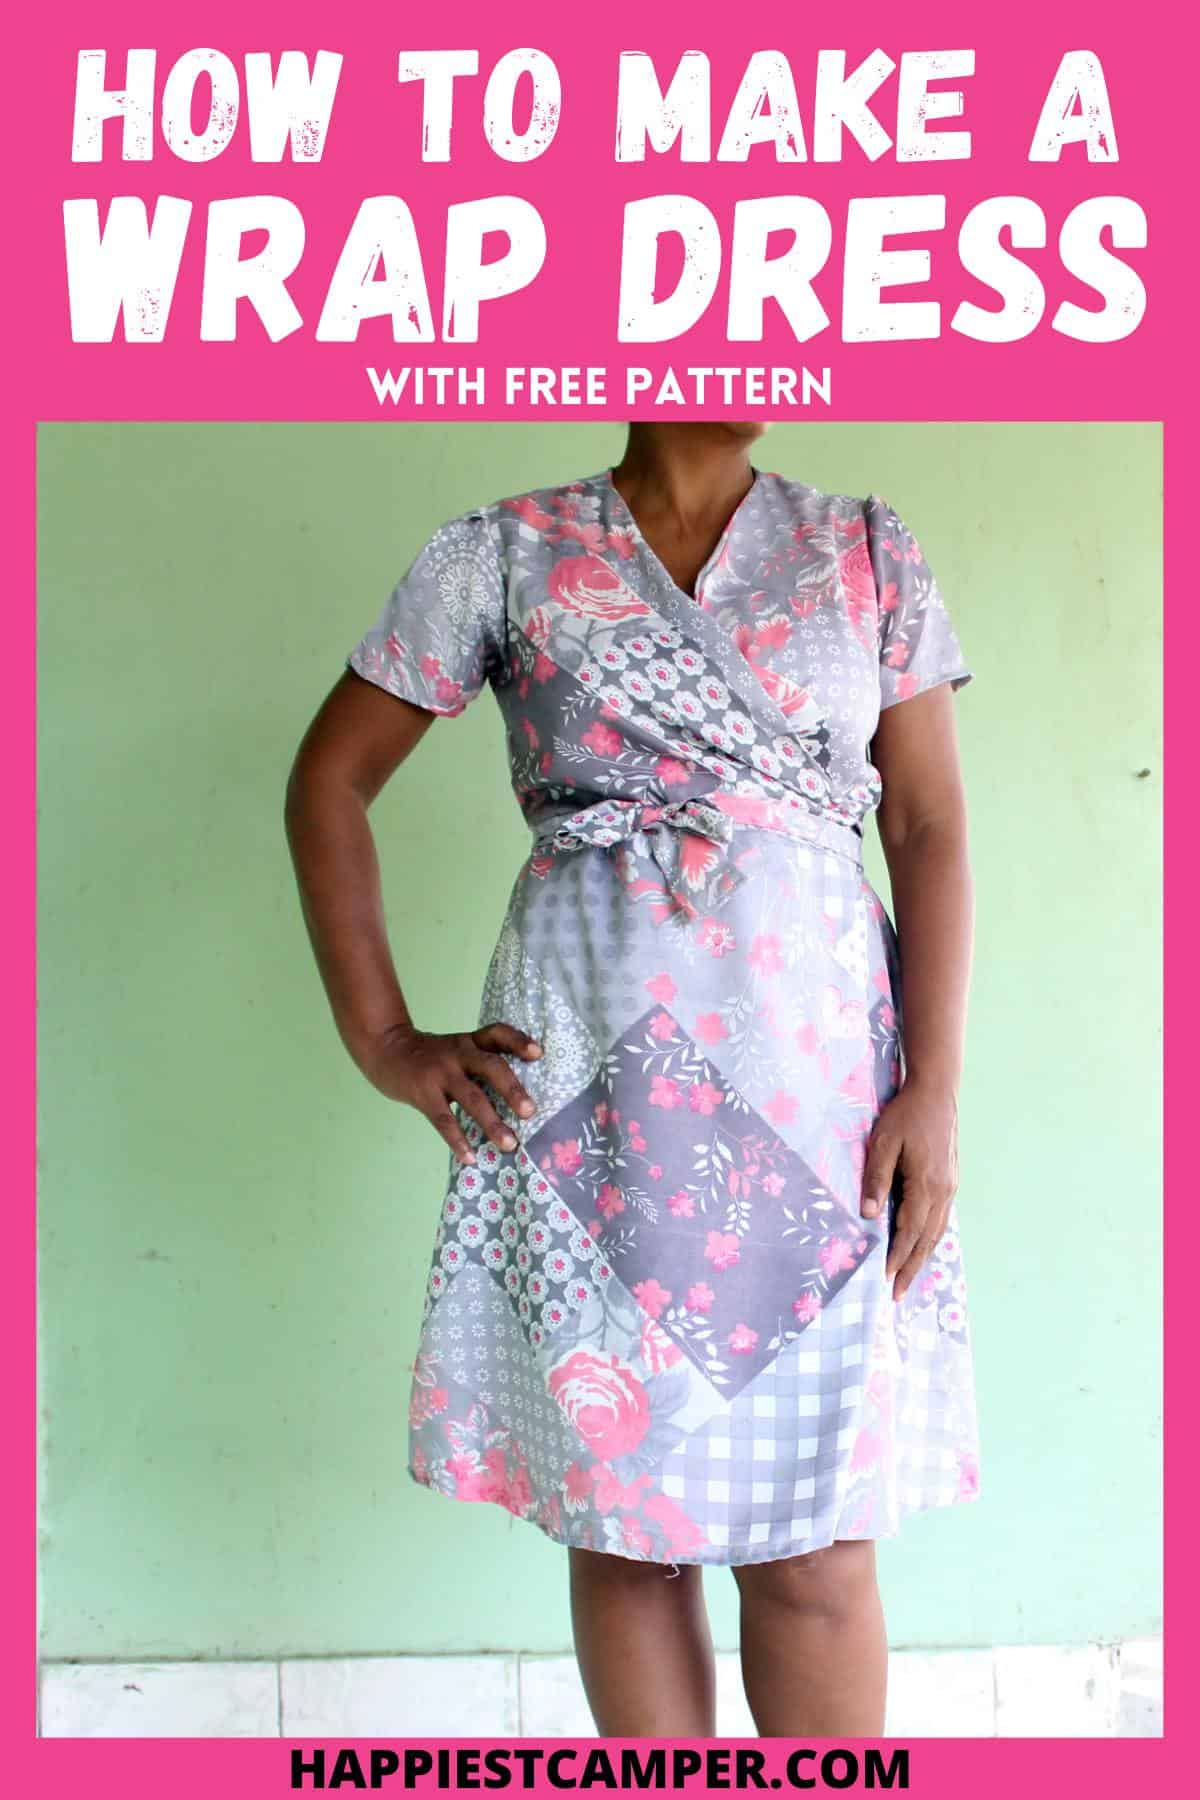 How To Make A Wrap Dress With Free Pattern